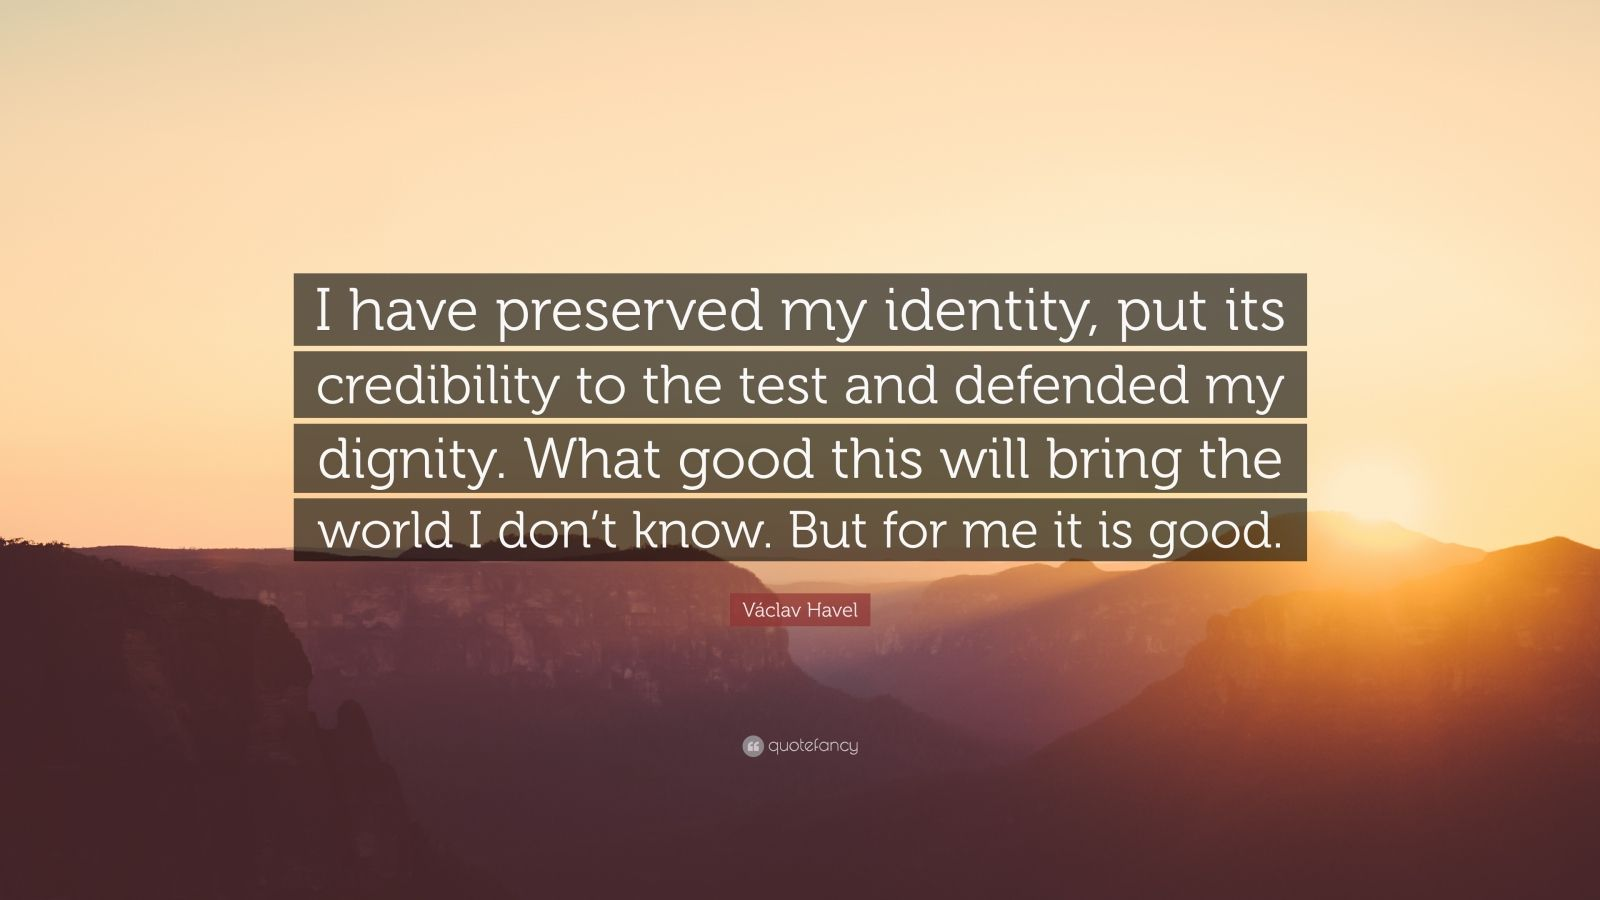 """Václav Havel Quote: """"I have preserved my identity, put its credibility to the test and defended my dignity. What good this will bring the world I don't know. But for me it is good."""""""